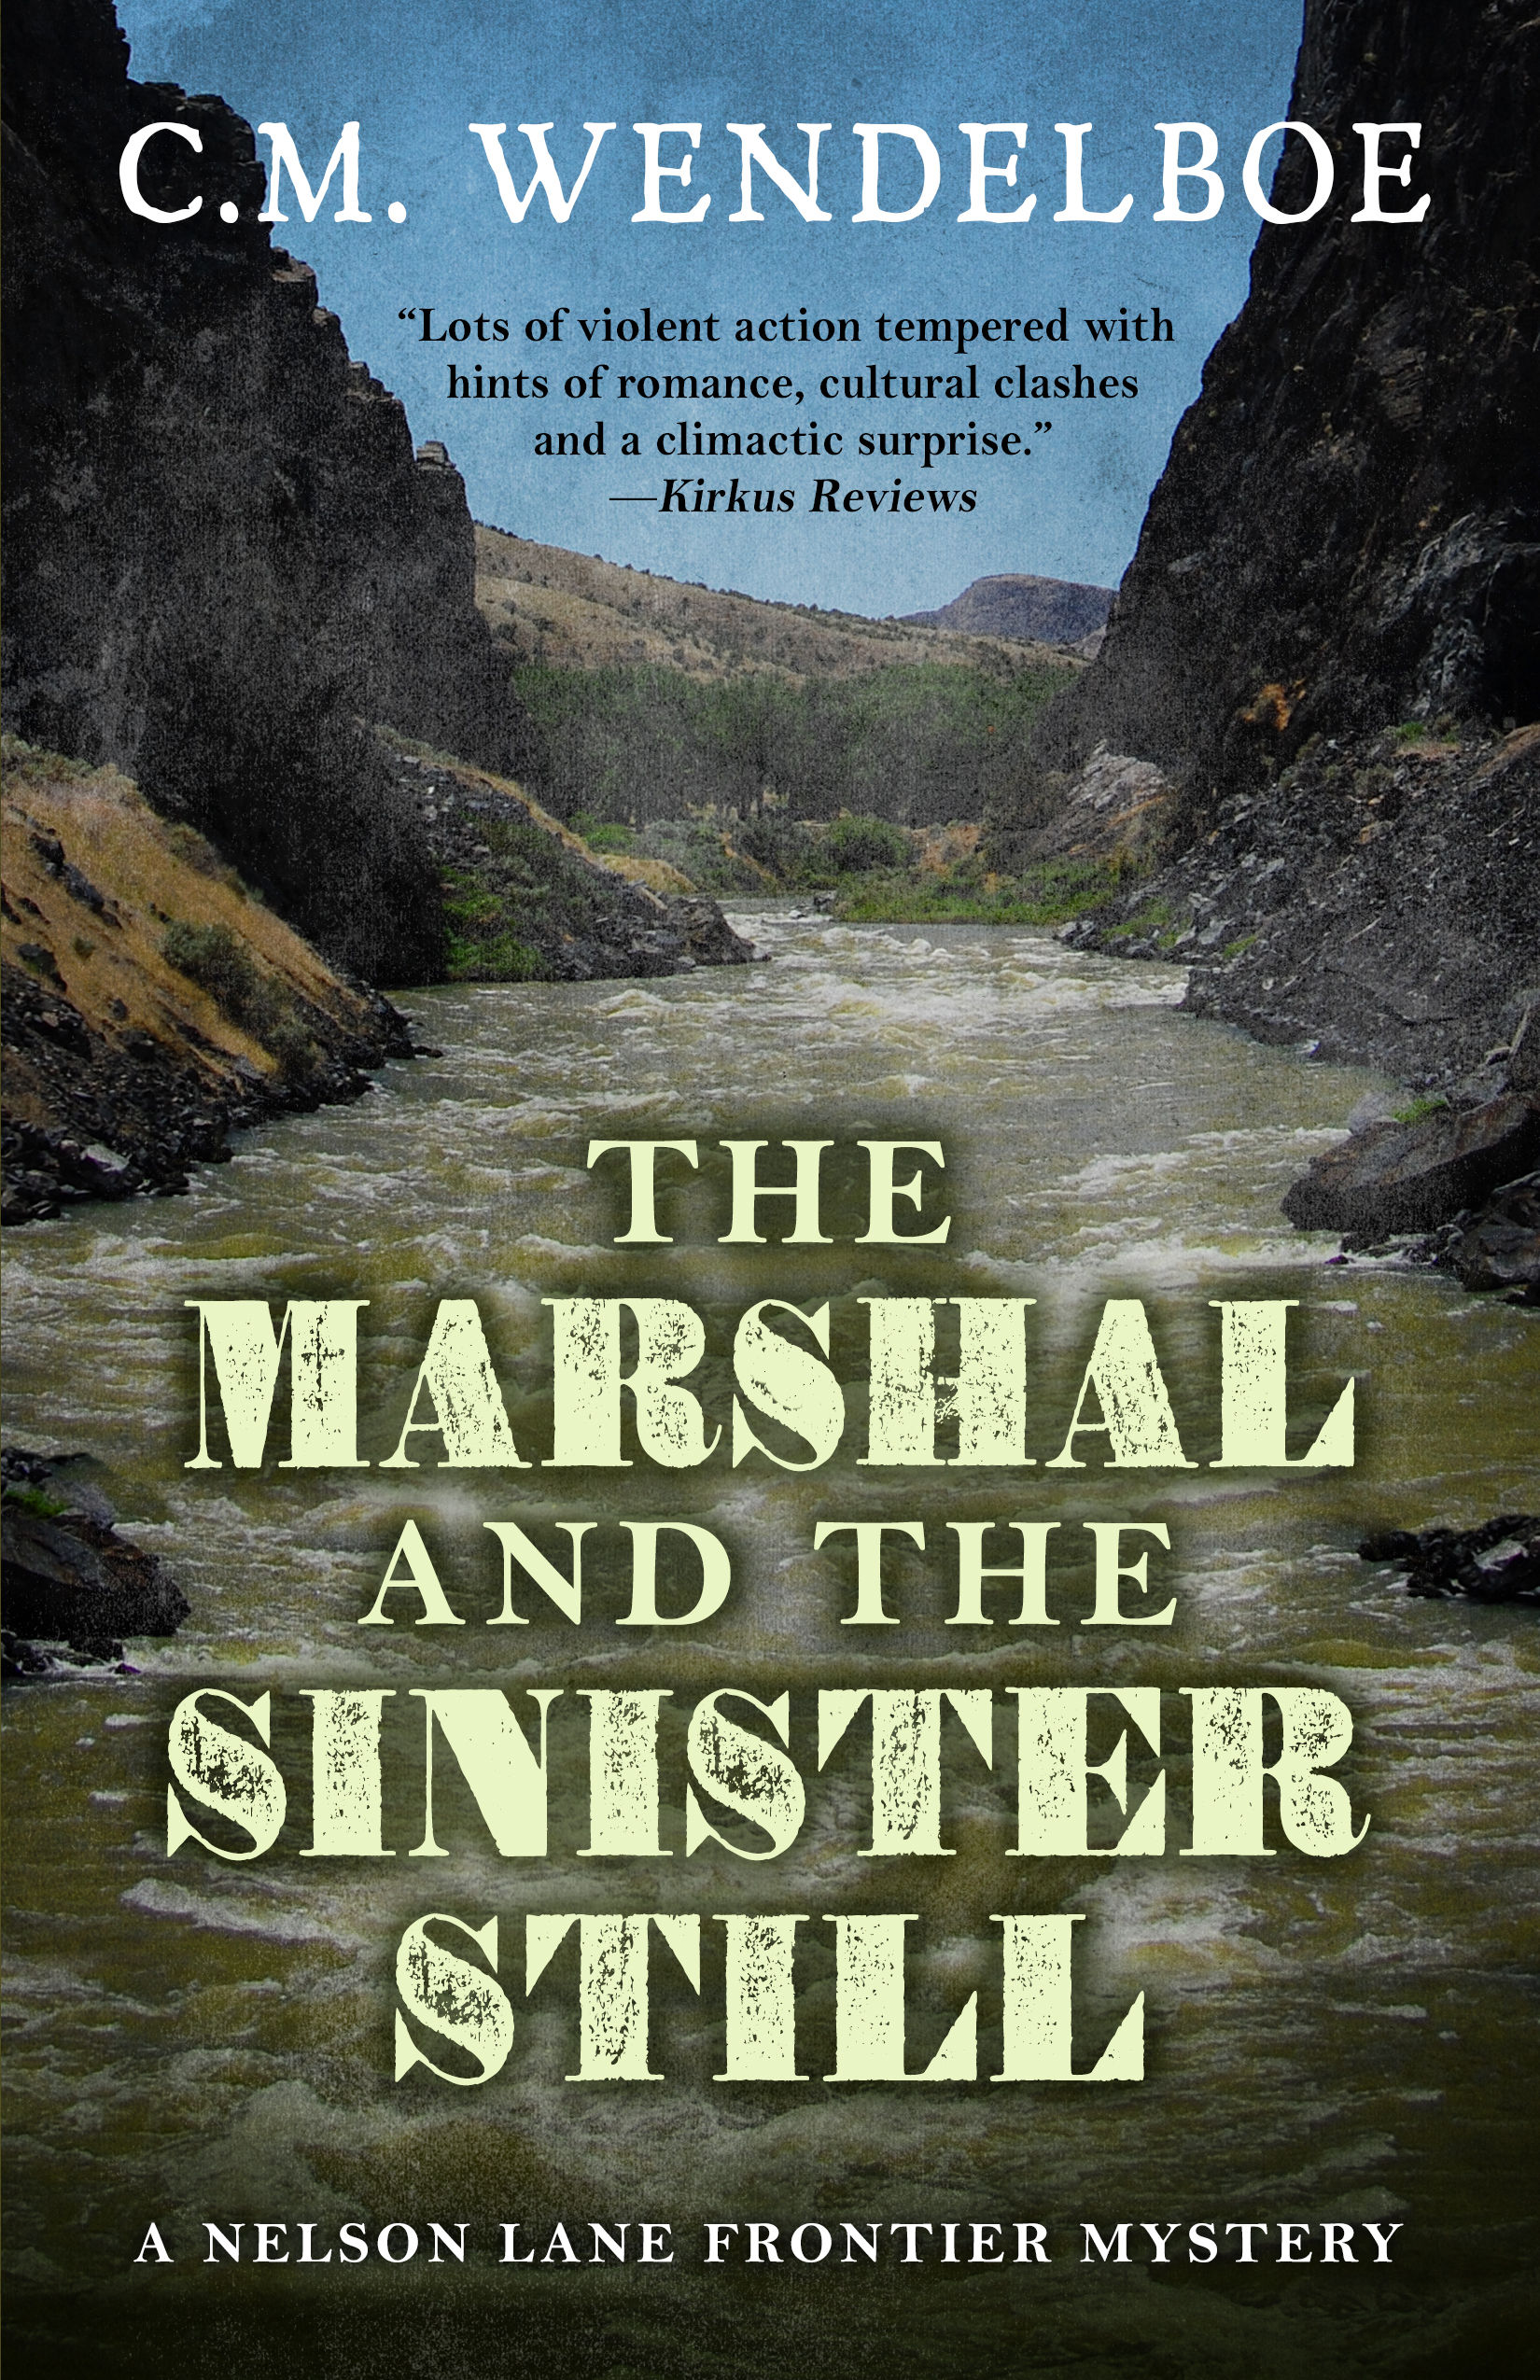 The Marshal and the Sinister Still by C. M. Wendelboe (Front Cover)